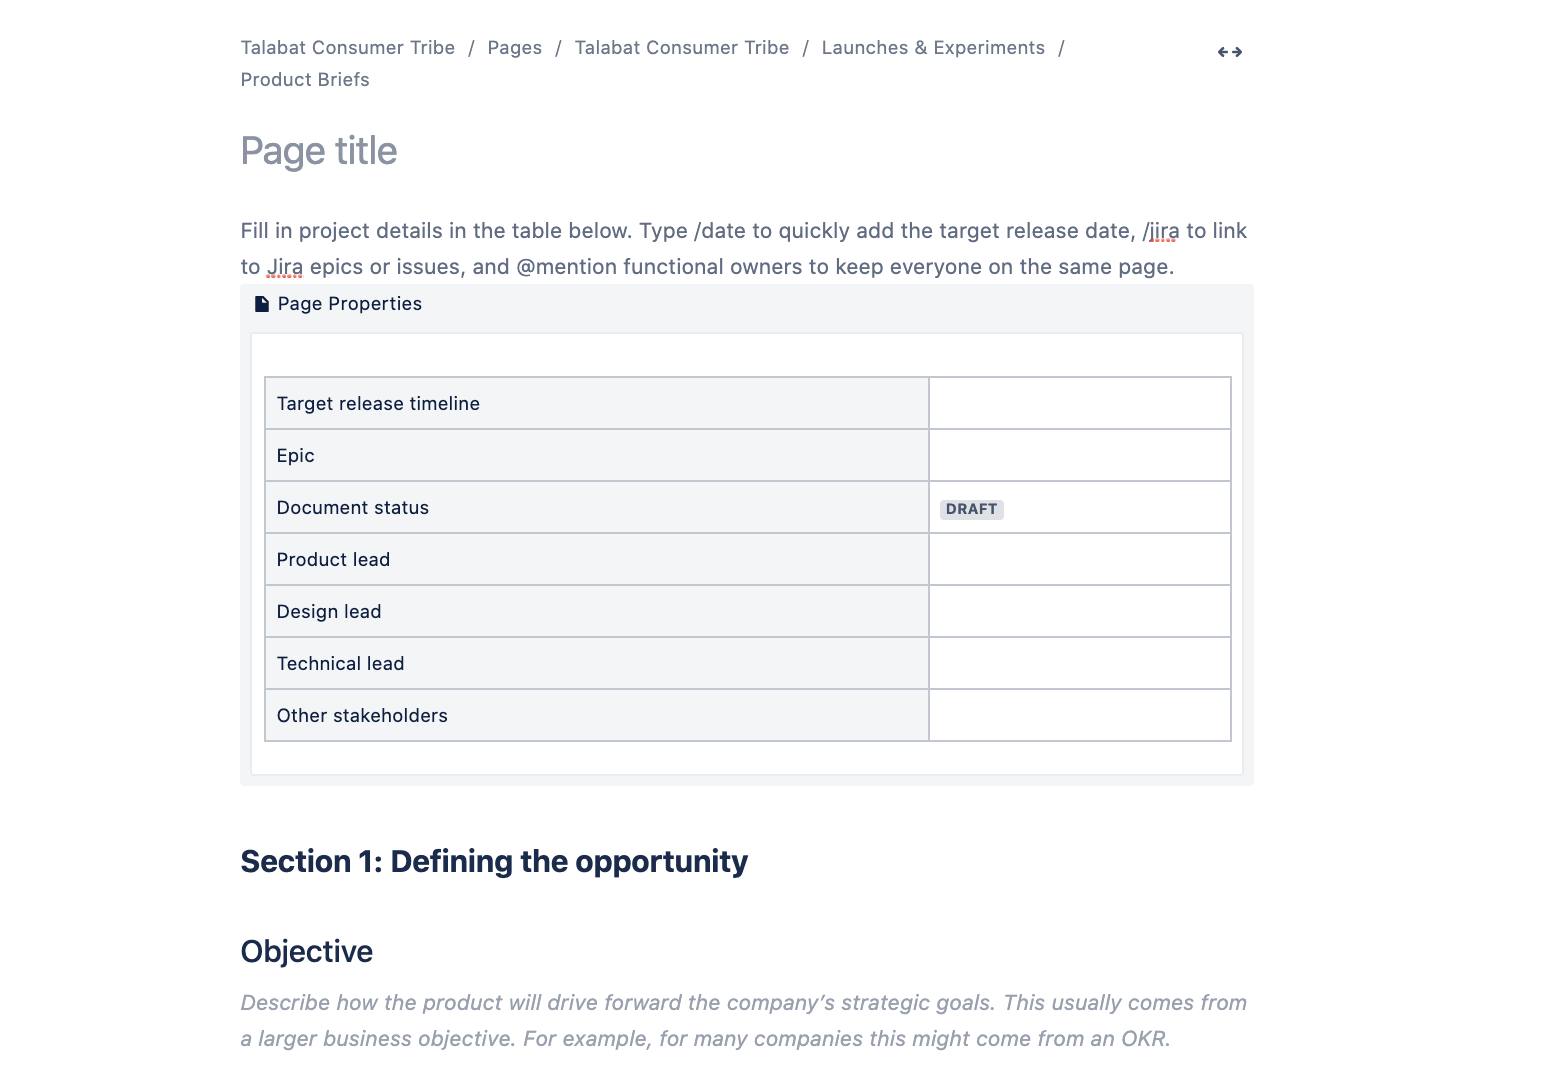 Our Product Brief template in Confluence